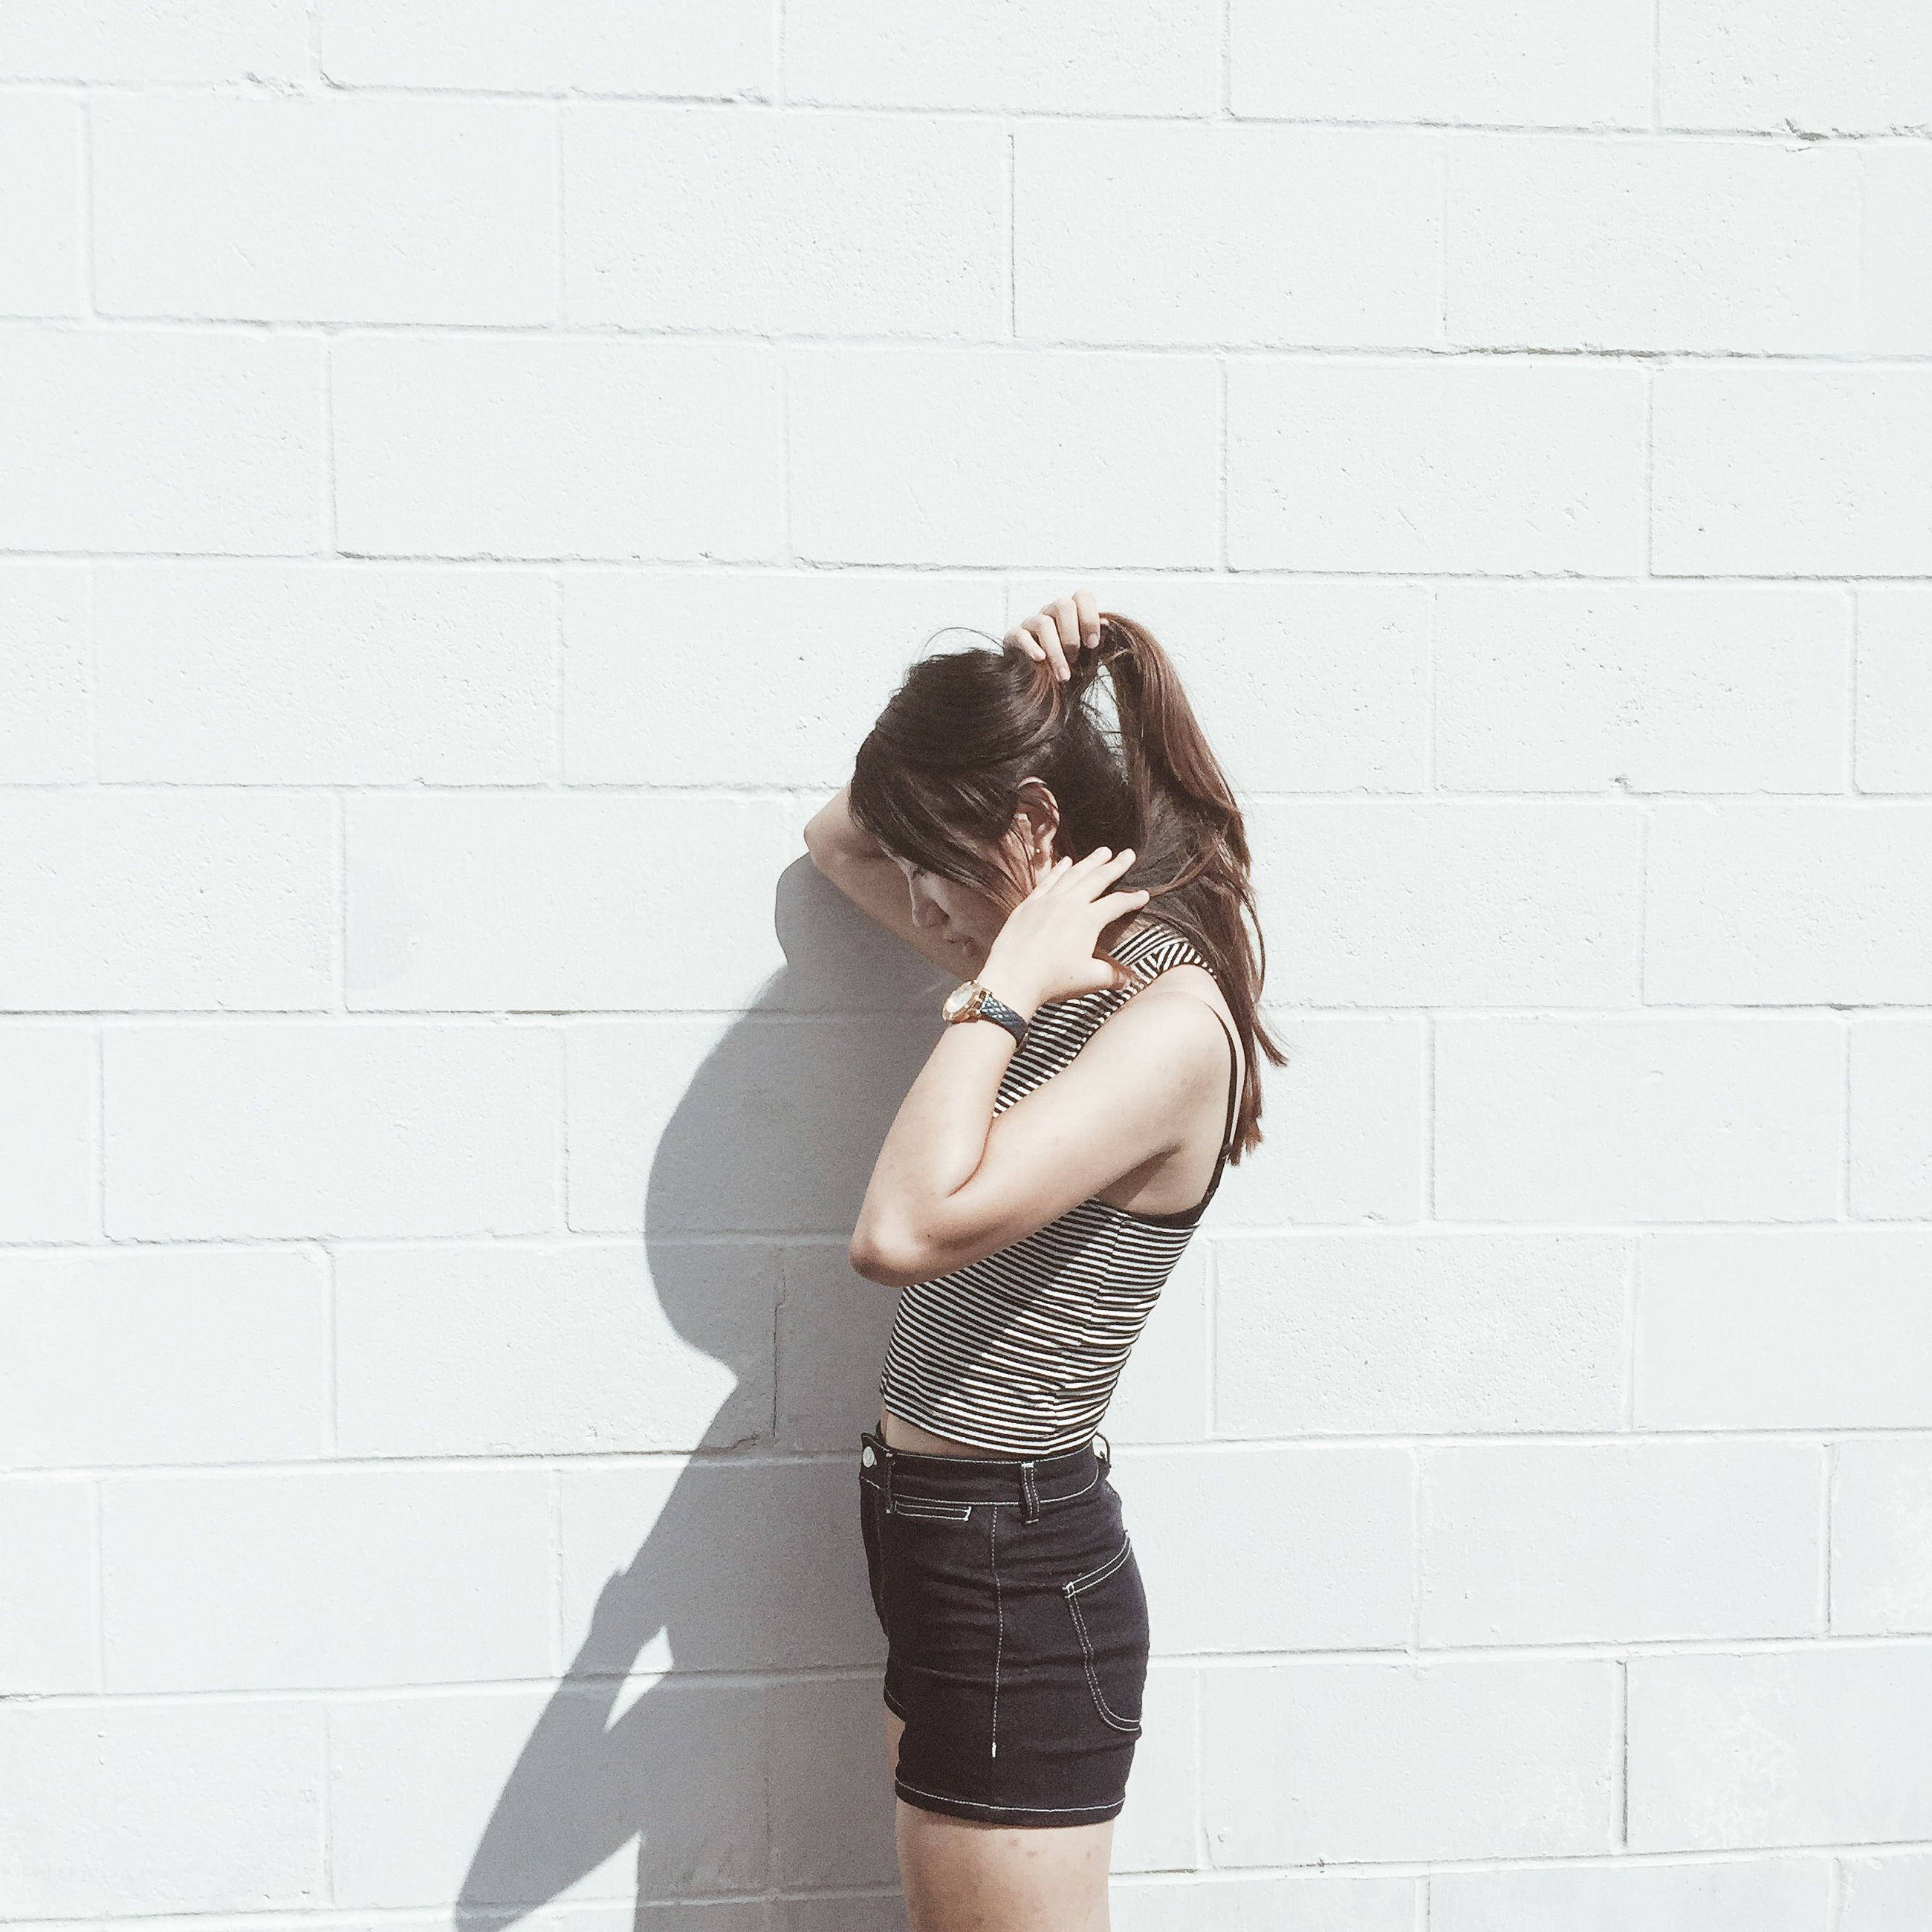 lifestyles, standing, leisure activity, person, young adult, young women, casual clothing, wall - building feature, fashion, sensuality, femininity, long hair, three quarter length, low section, front view, shadow